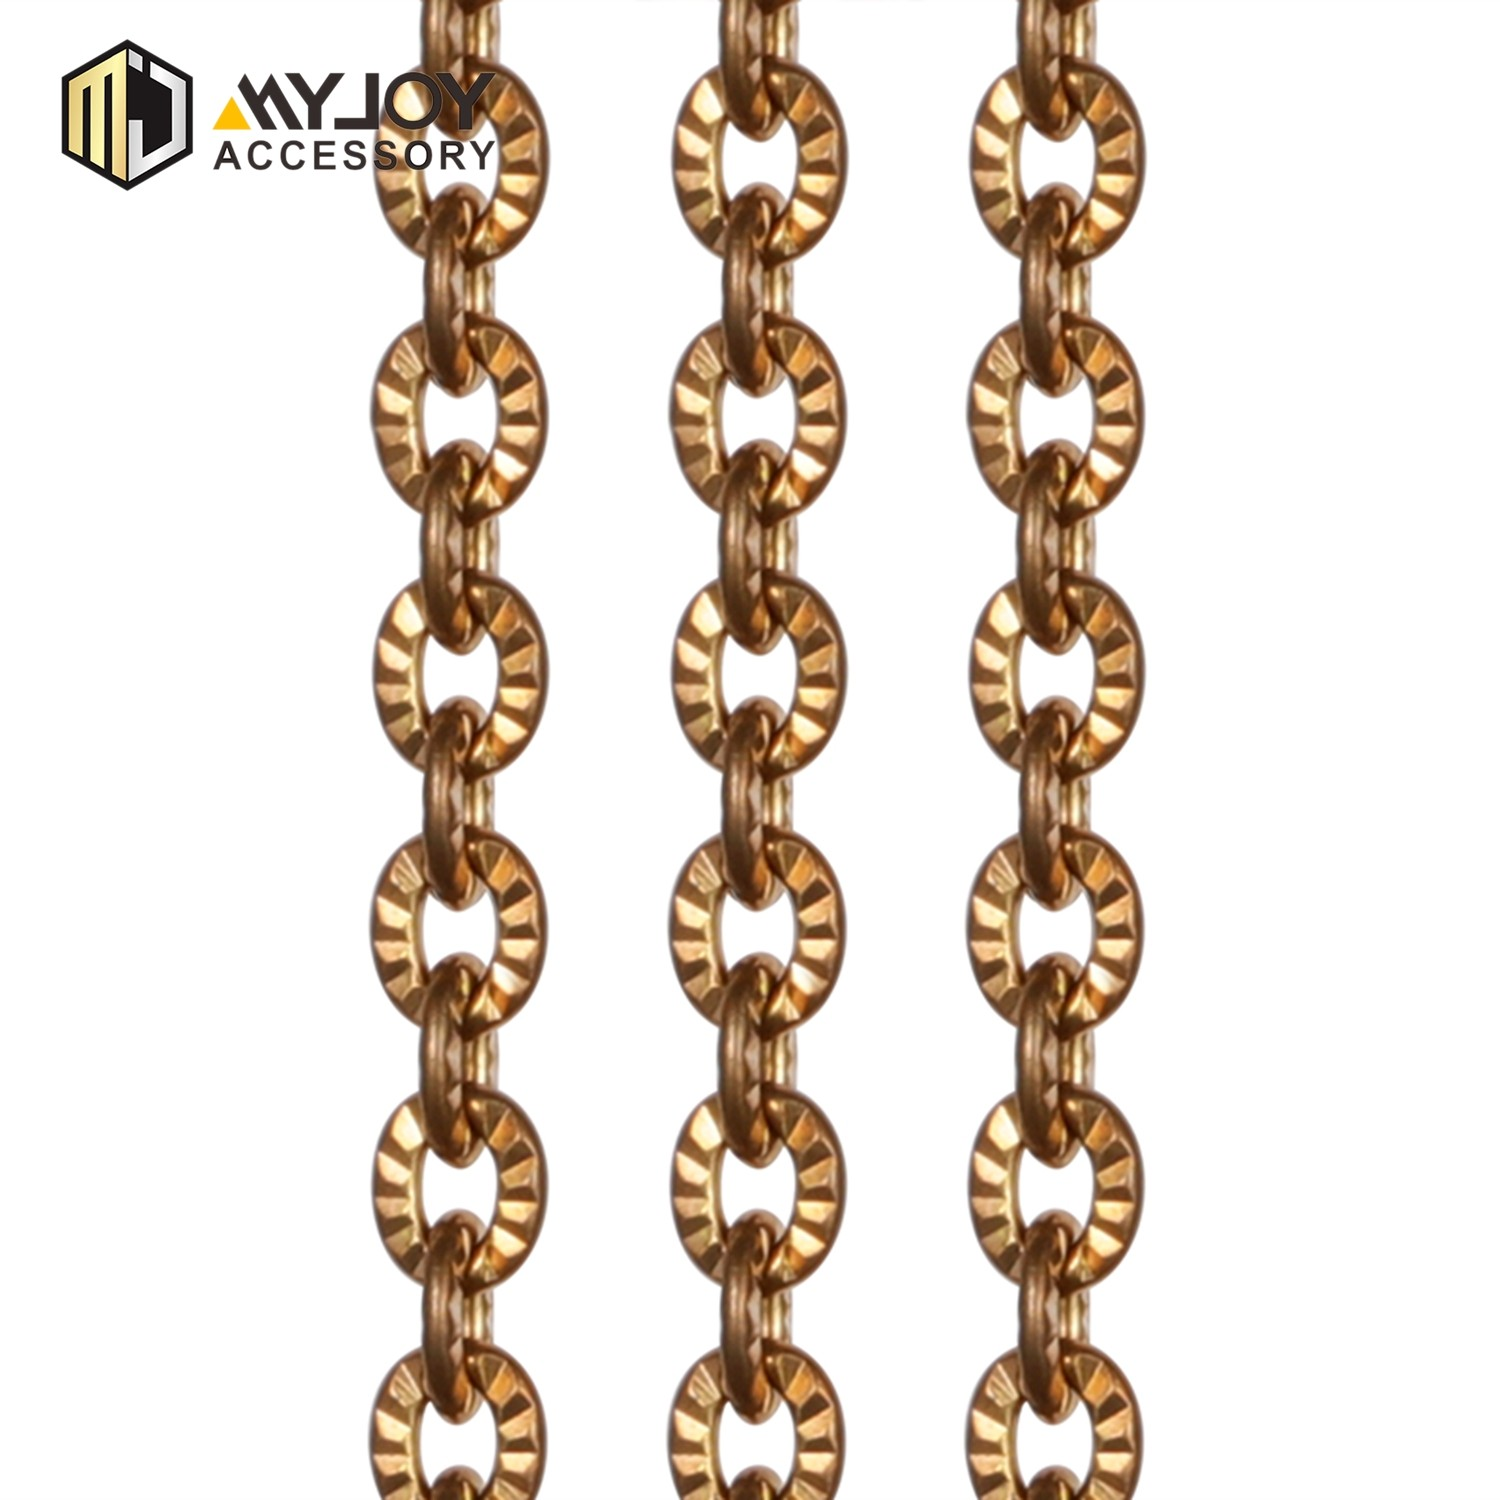 MYJOY Wholesale strap chain factory for bags-2